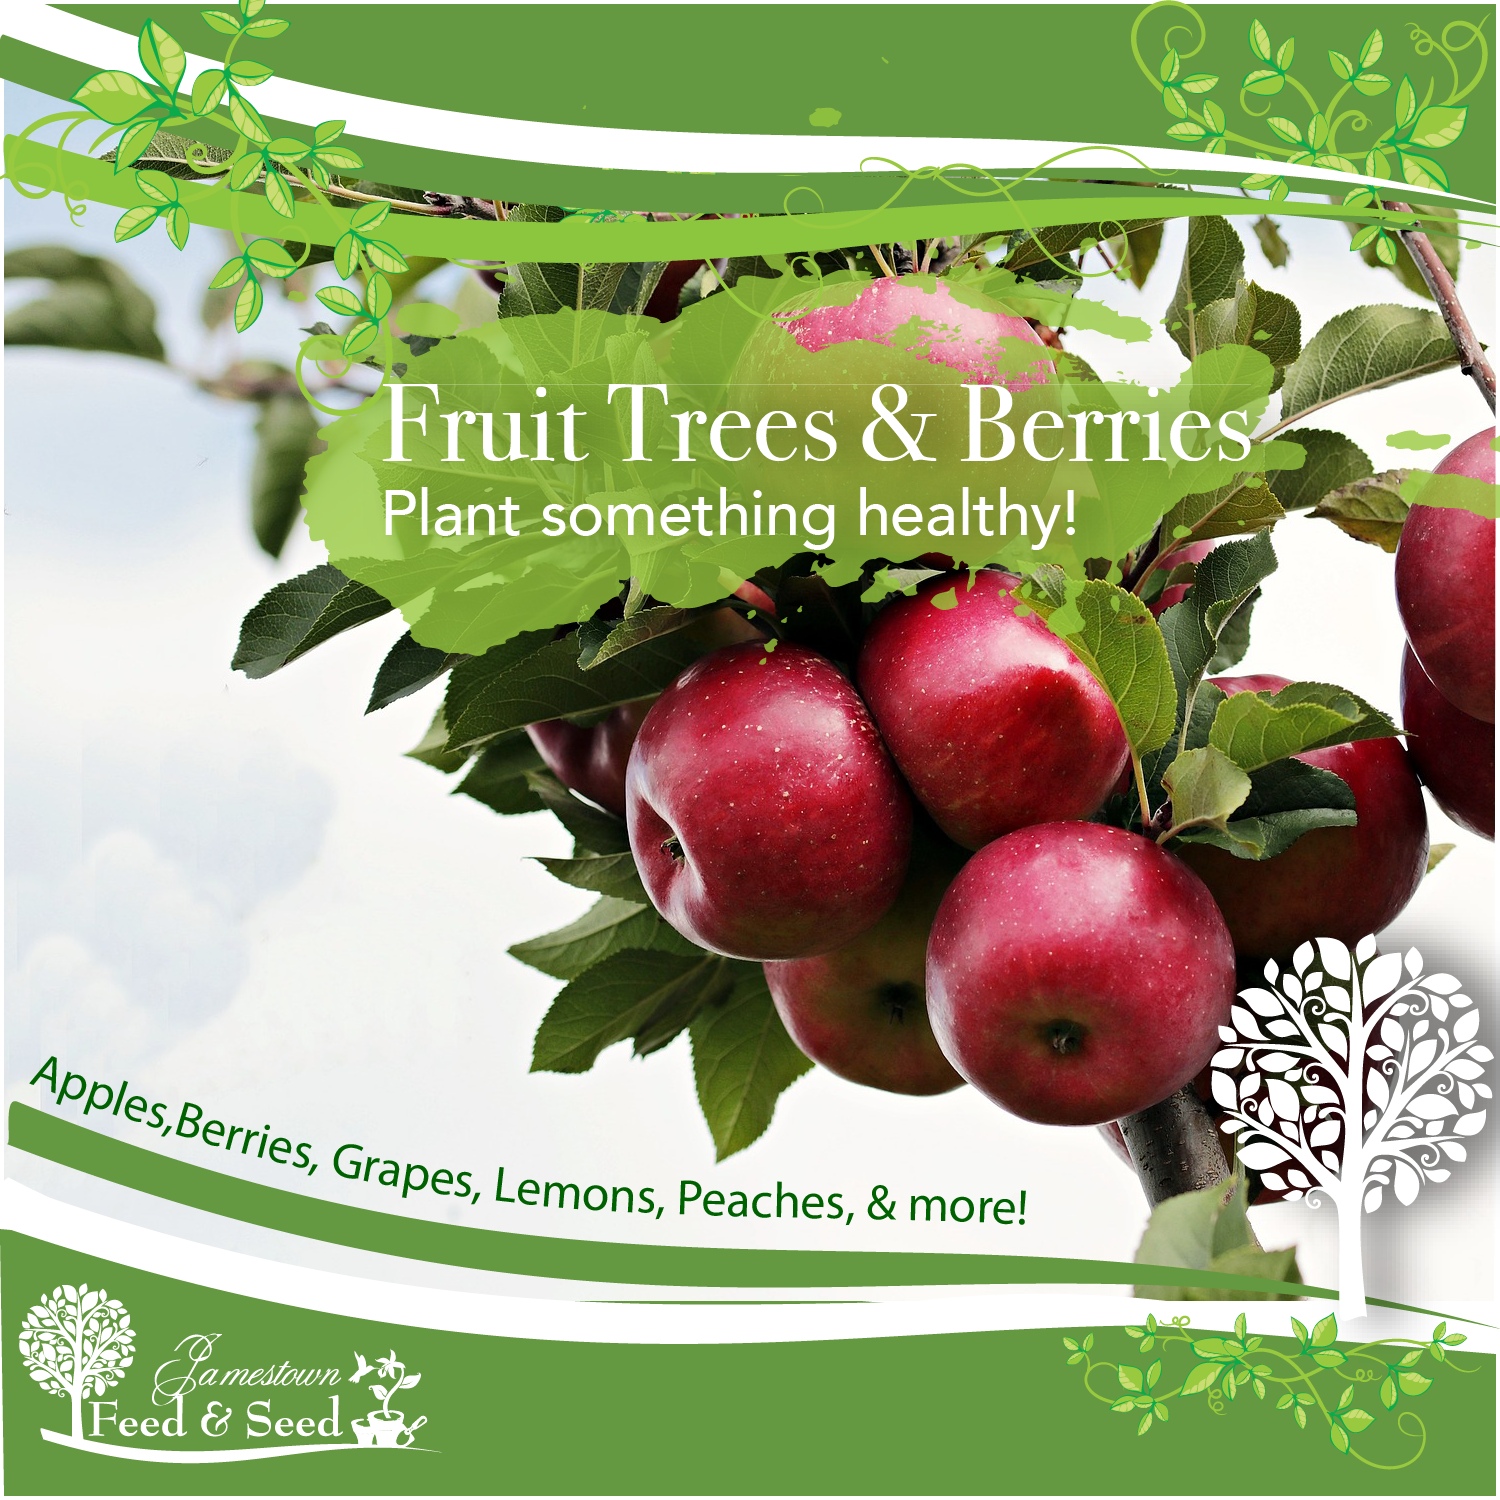 fruit trees ad-01.png